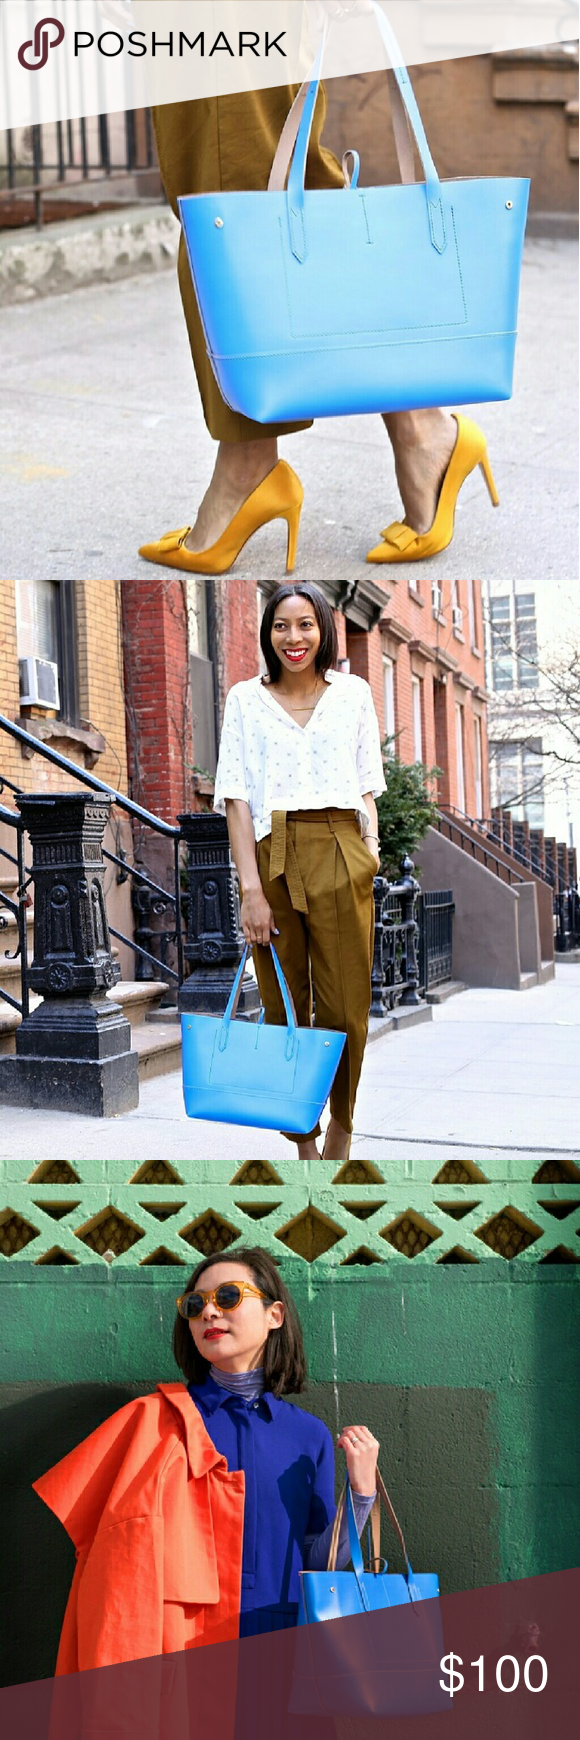 J. Crew 'Uptown' Tote in Neon Azure Brand new and never been worn! As seen on countless fashion bloggers! J. Crew Bags Totes